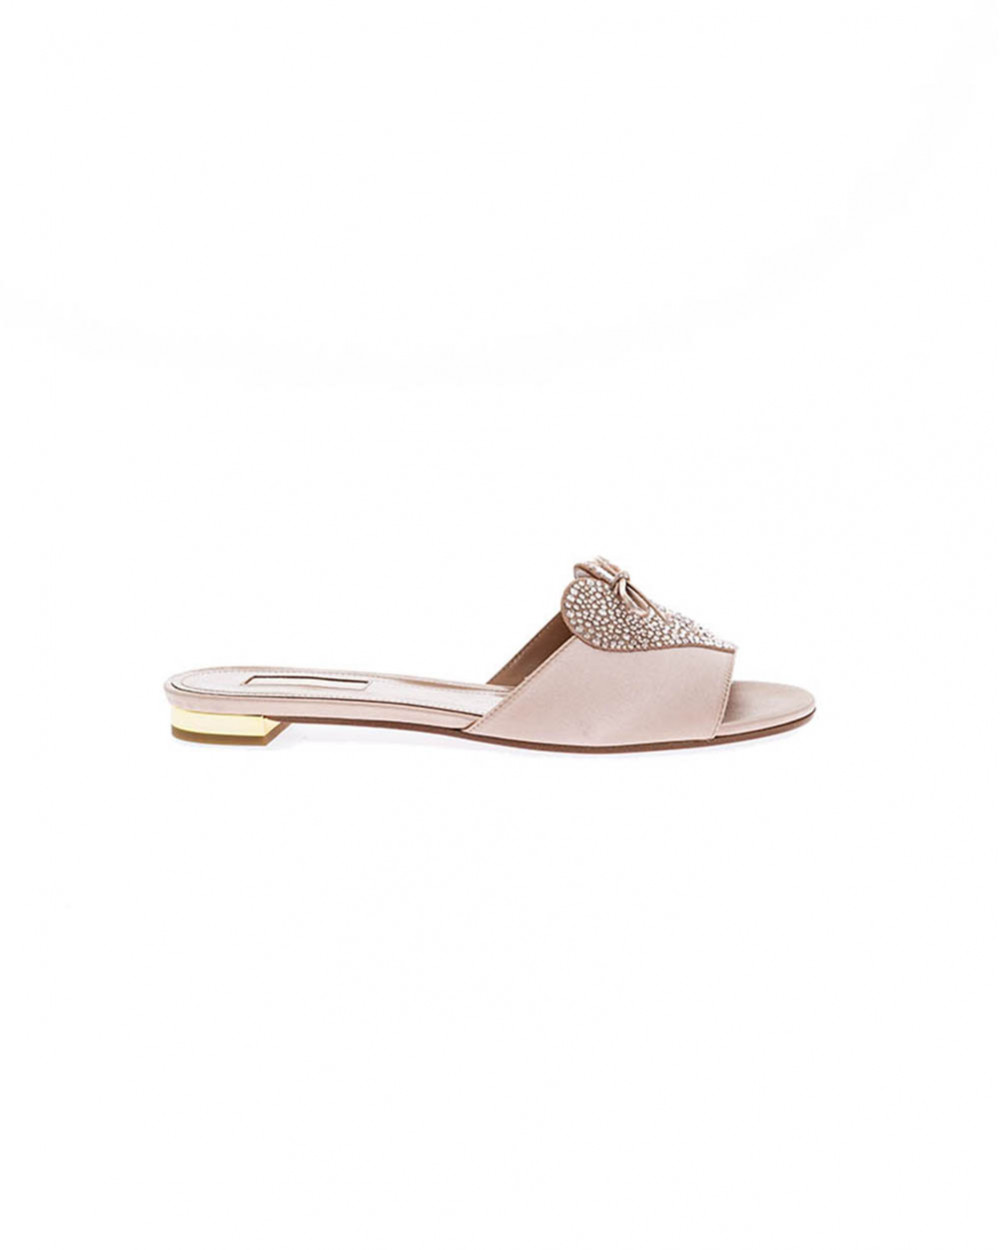 Powdery pink mules with Swarovsky stones Aquazurra for women